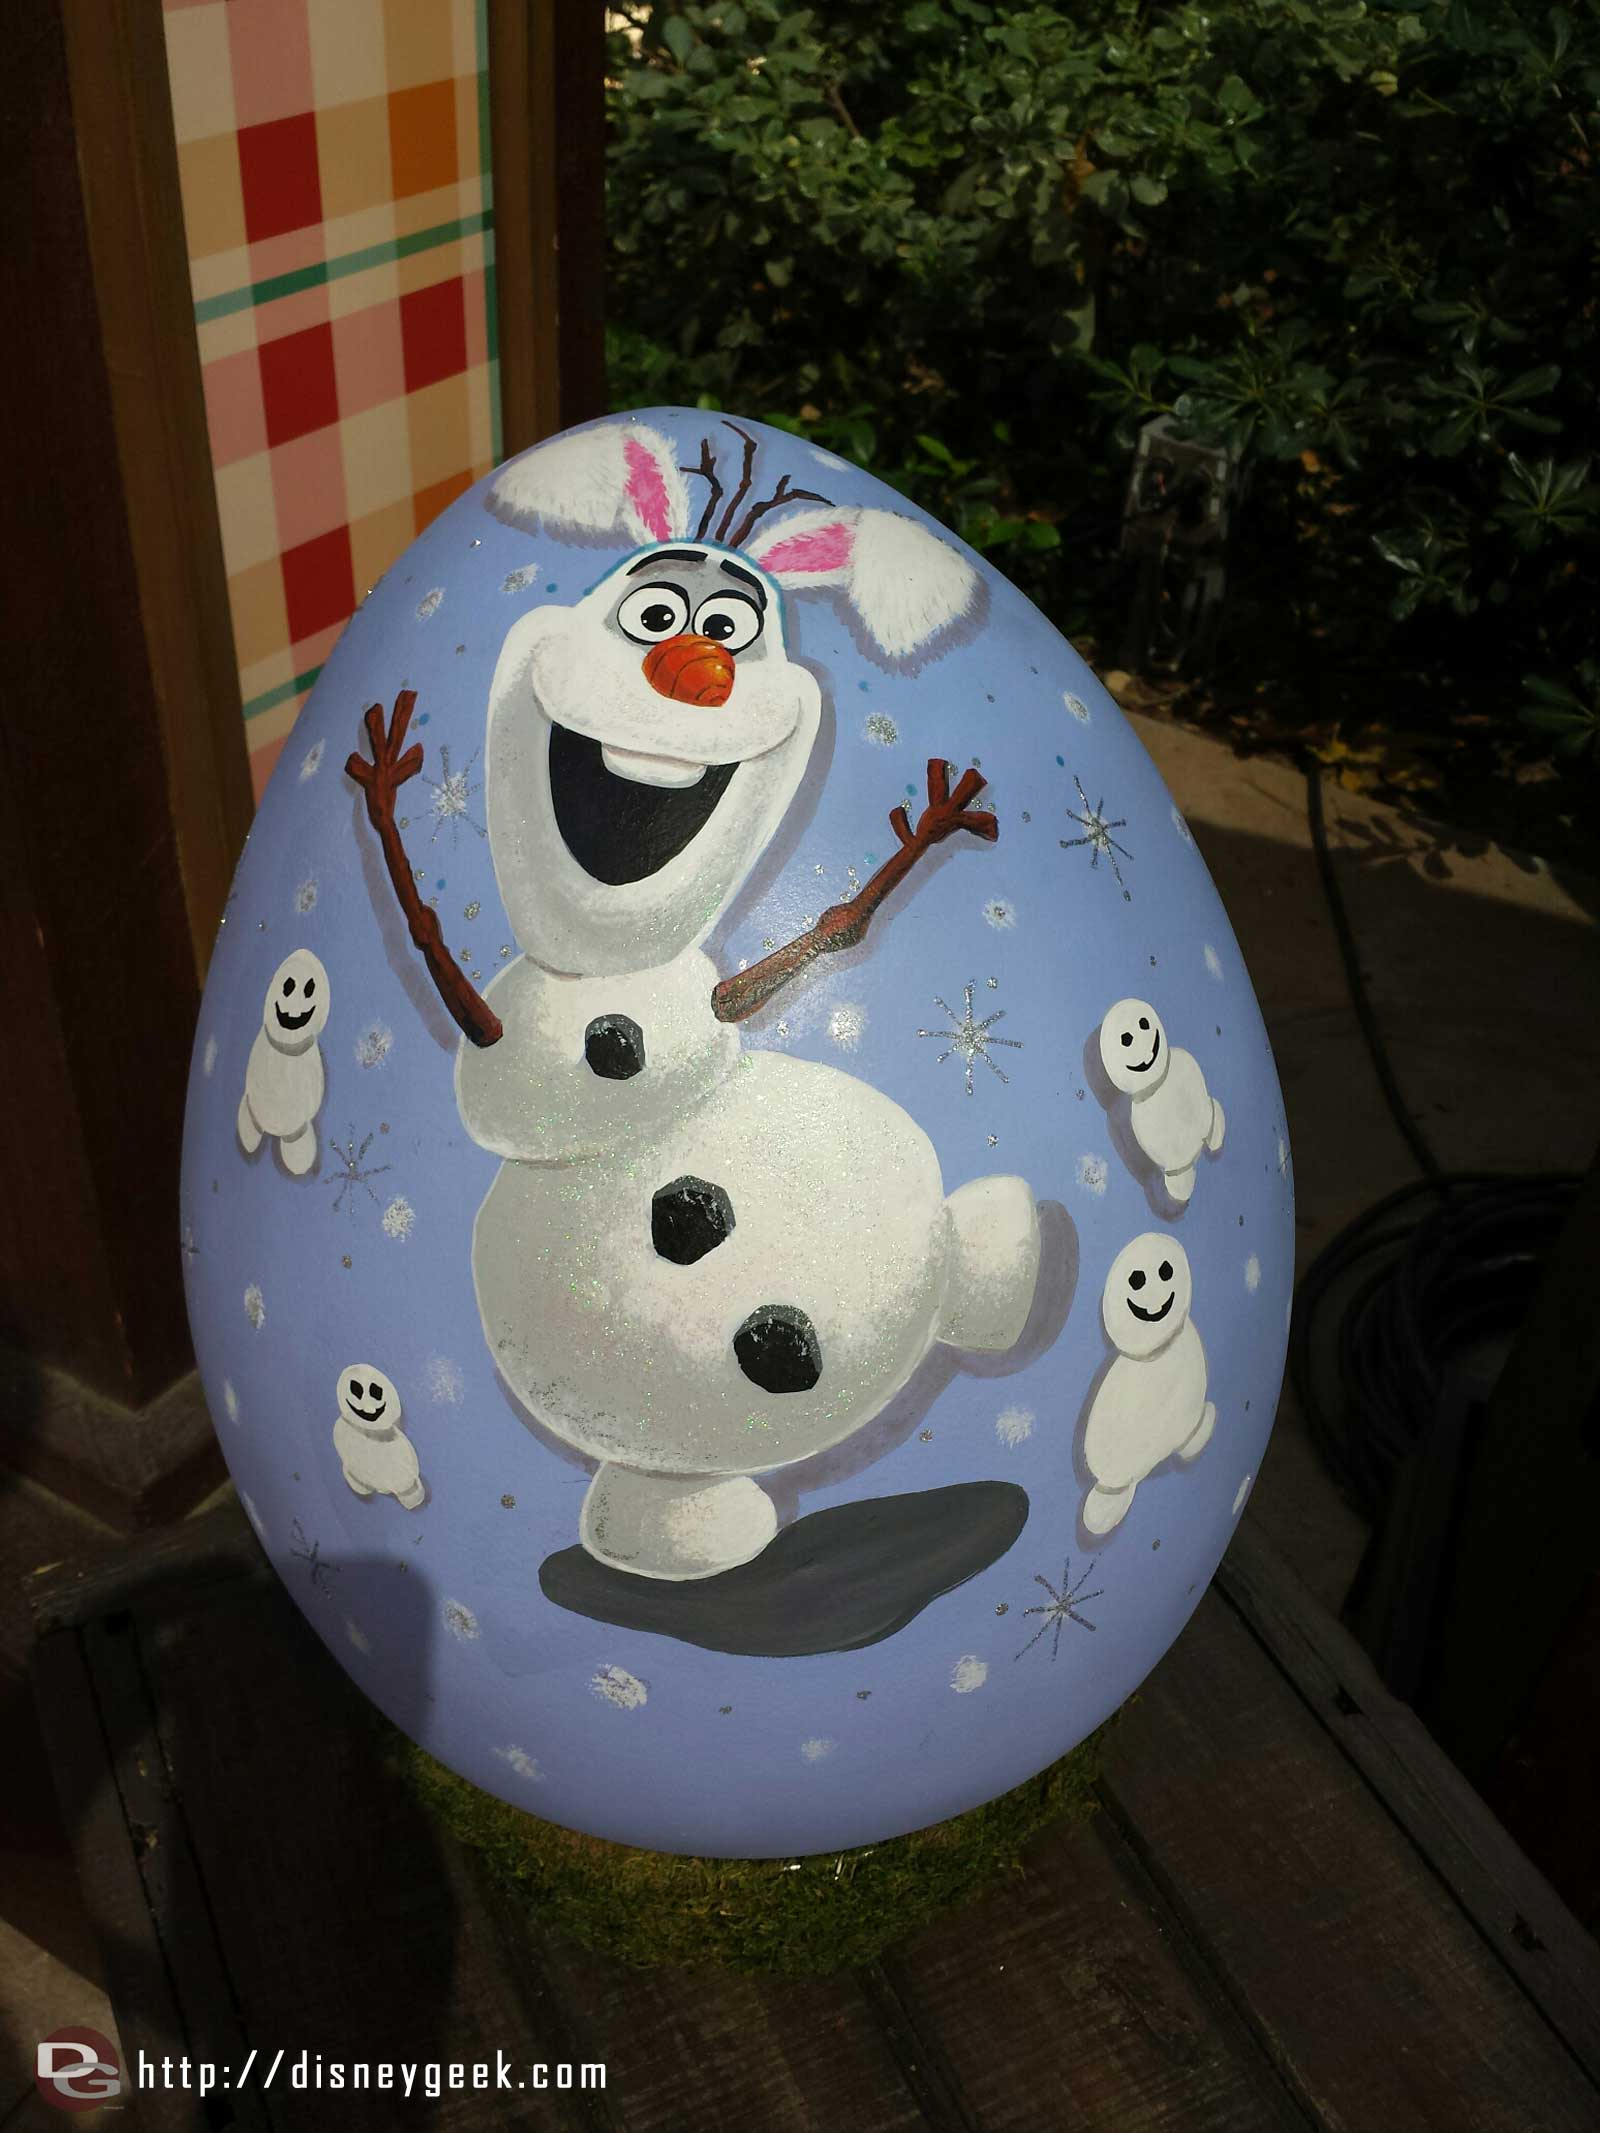 Olaf with rabbit ears and snowbabbies egg art at the Springtime Roundup #Disneyland #Frozen